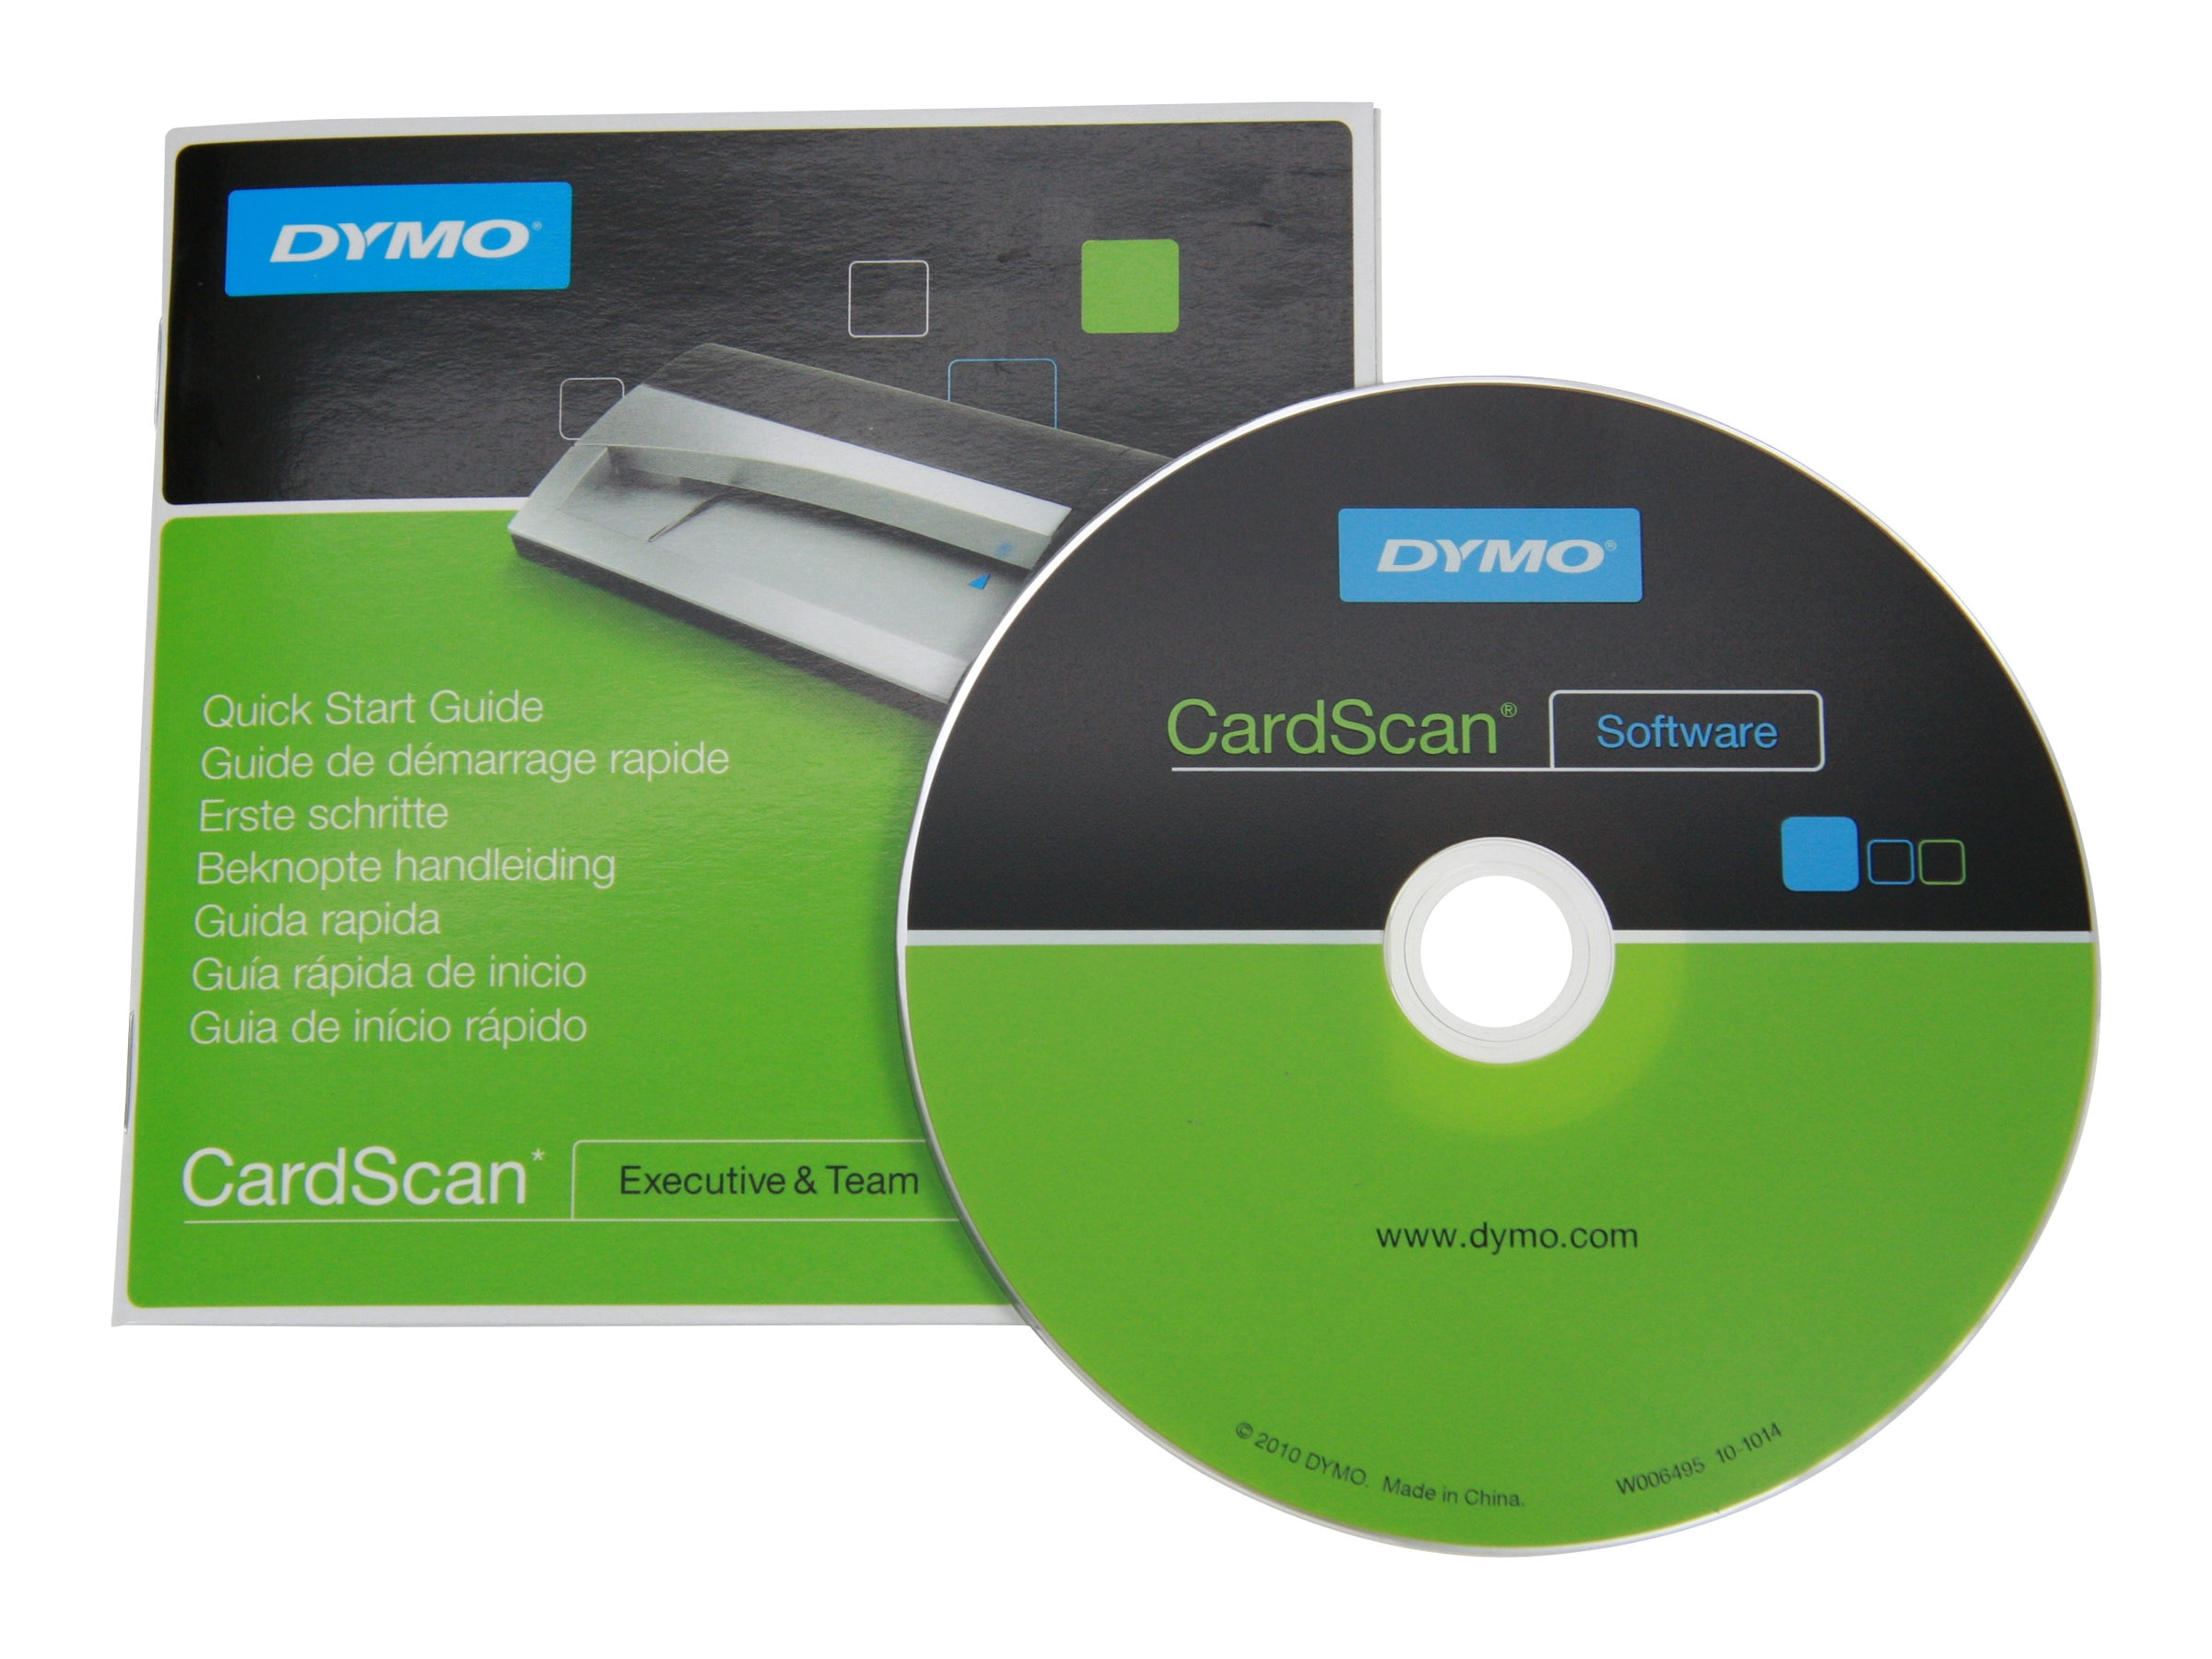 DYMO CardScan Team 9.0 1-user SW CD-ROM, 1806066